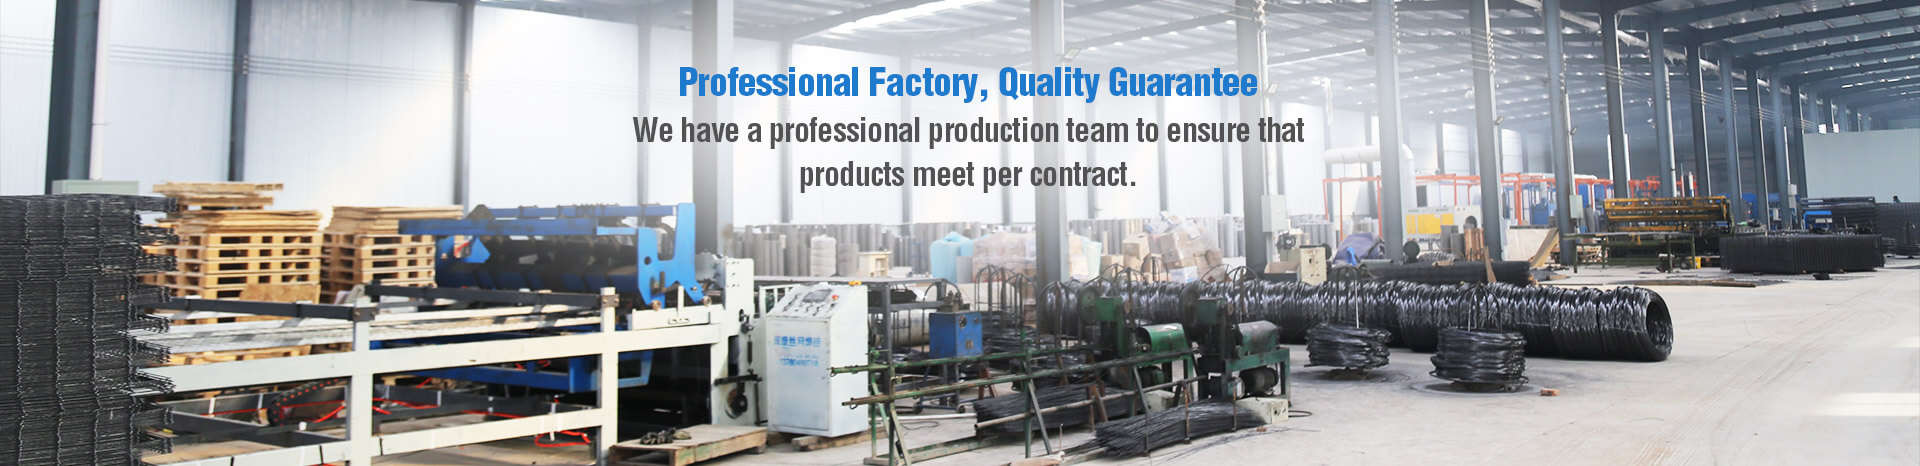 Professional Factory, Quality Guarantee